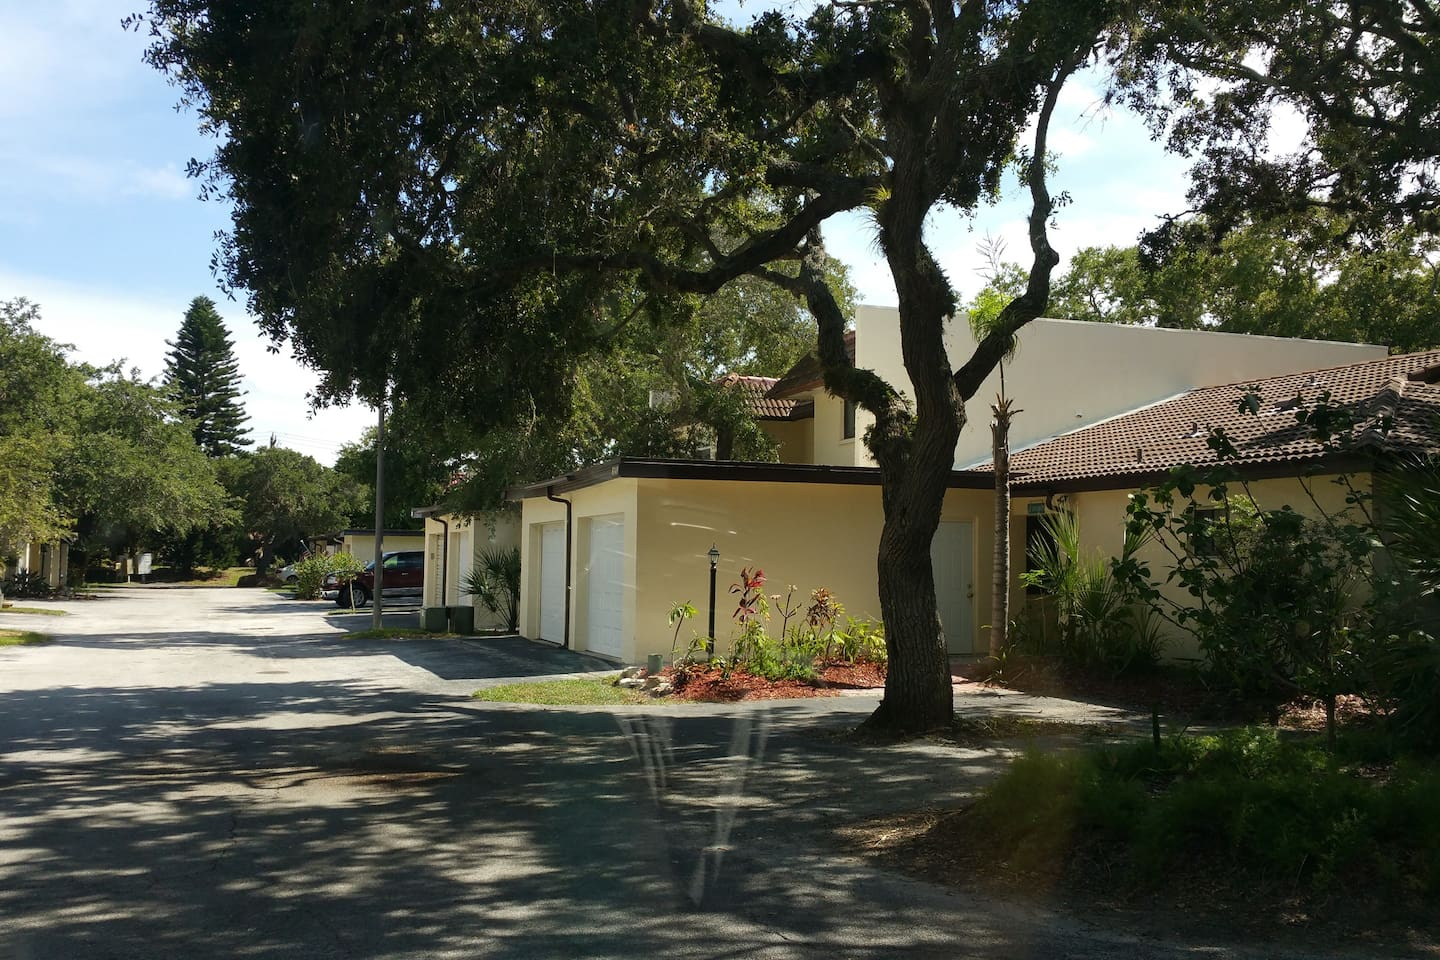 Townhome Community